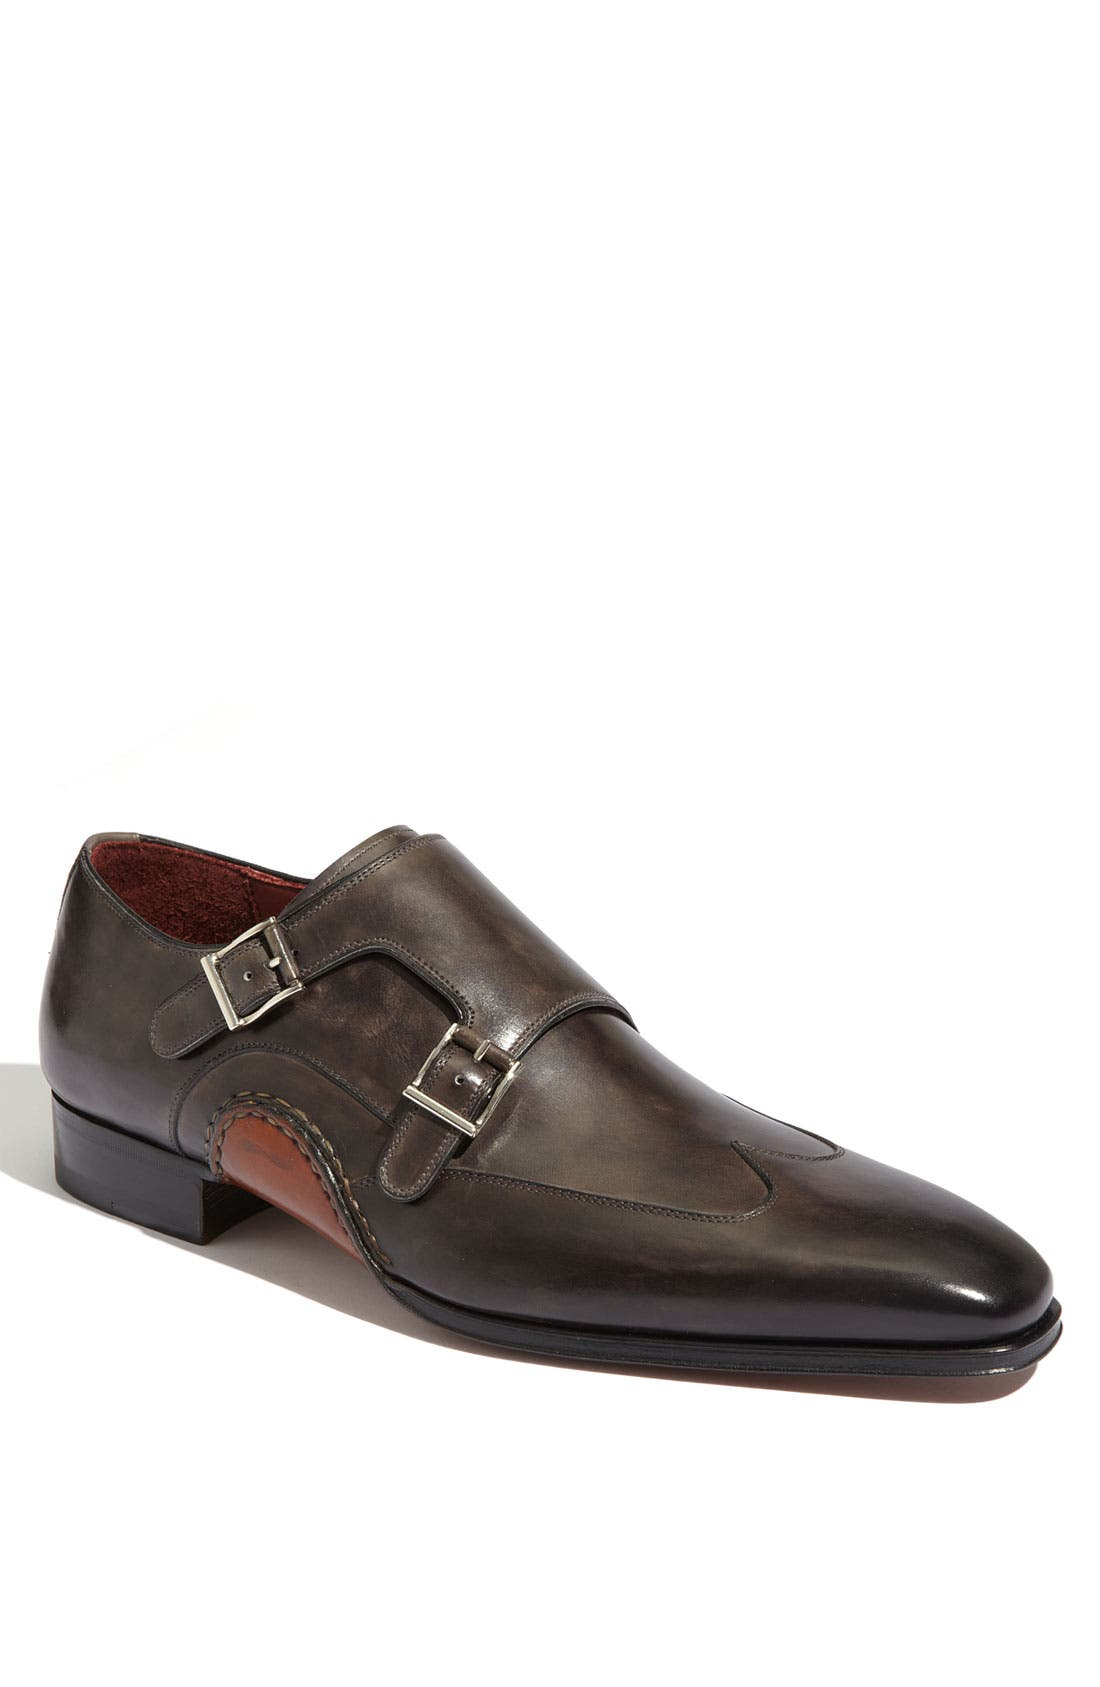 Main Image - Magnanni 'Zelo' Slip-On